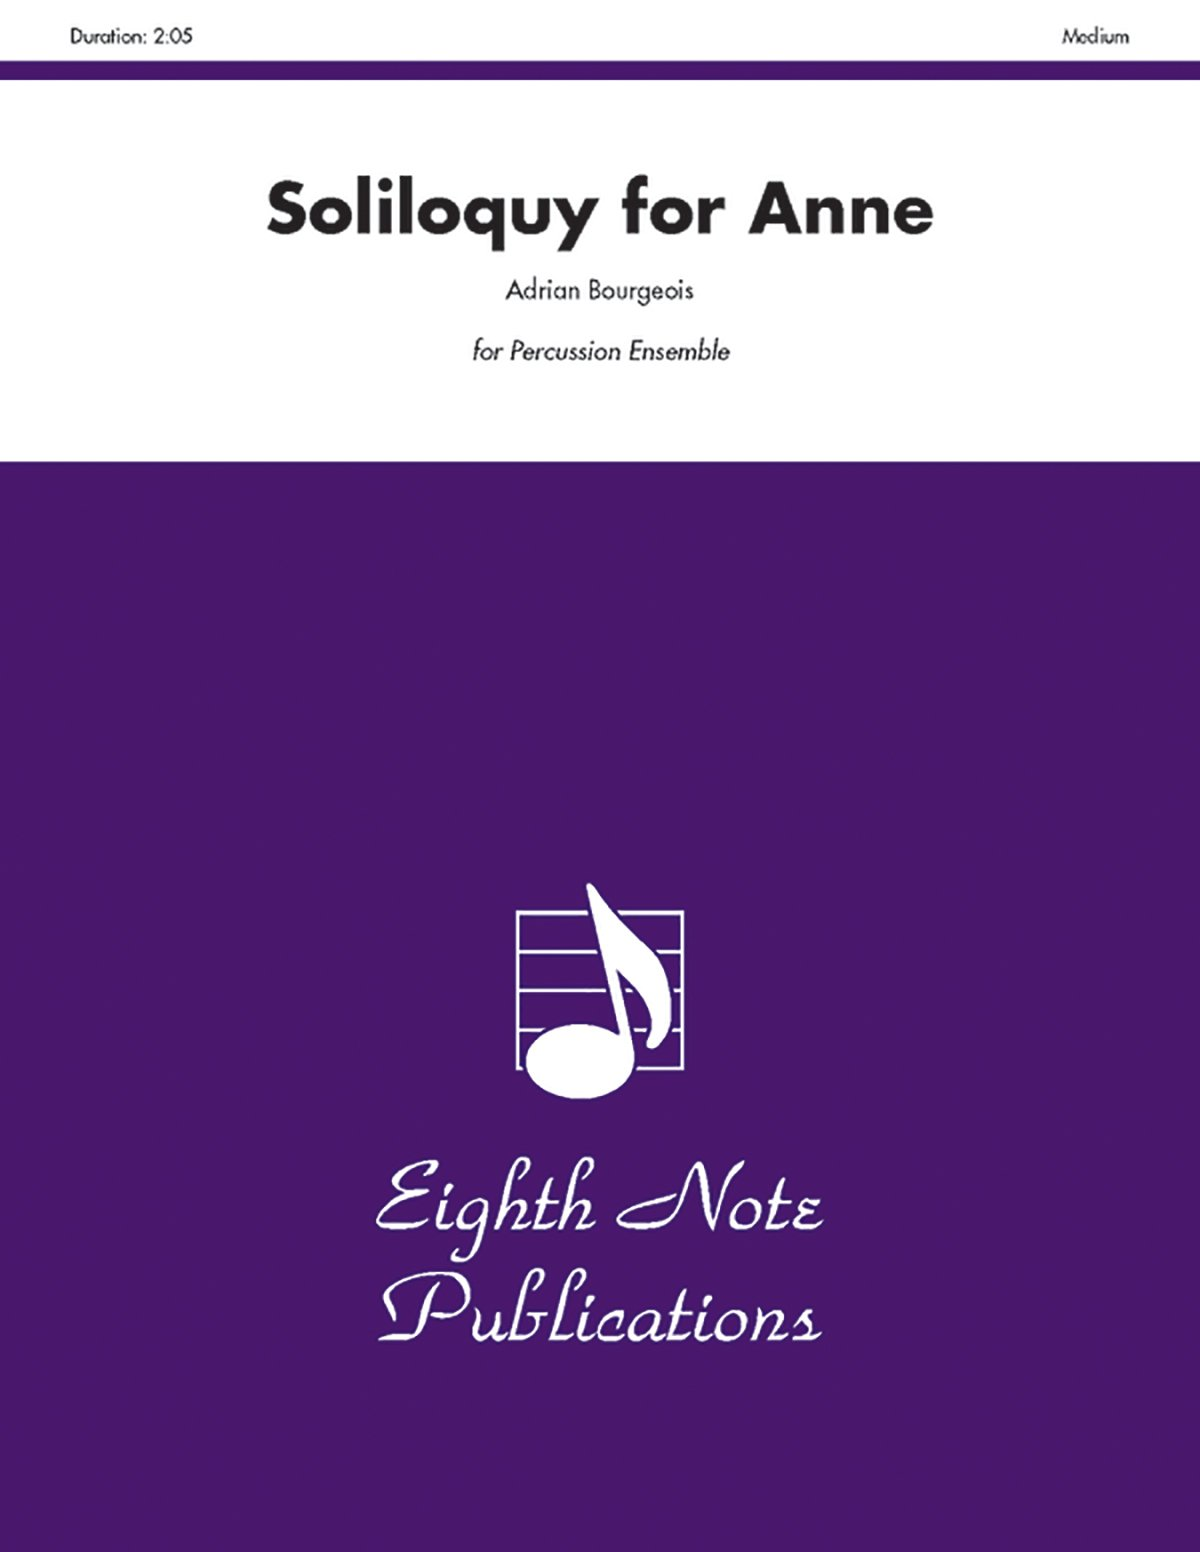 Soliloquy for Anne: For 6 Players, Score & Parts (Eighth Note Publications) PDF